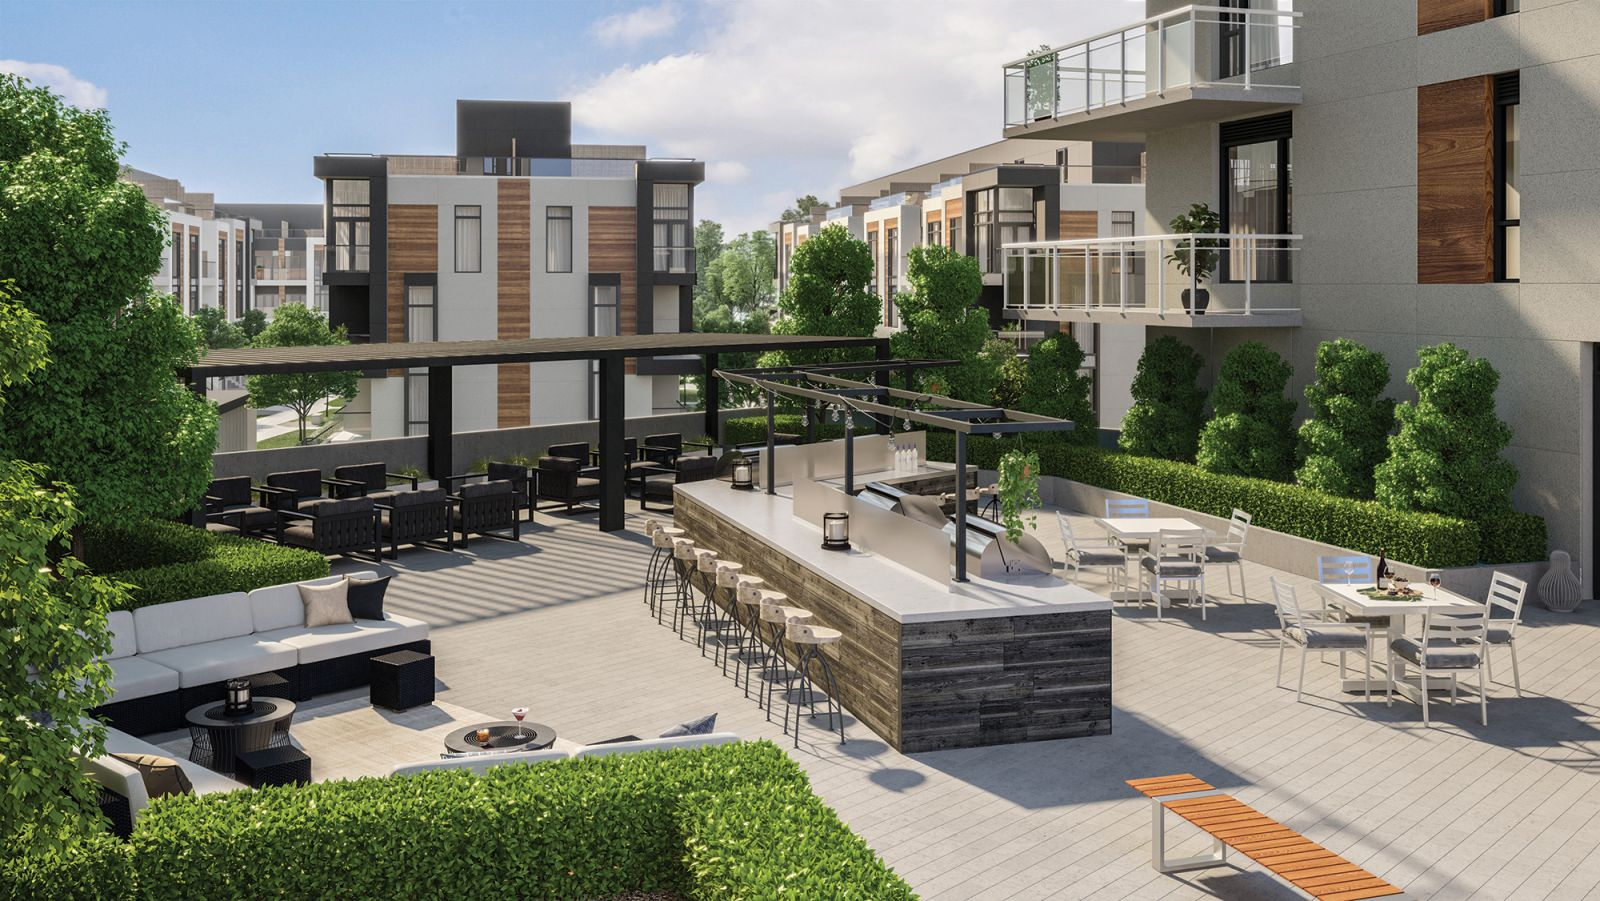 OUTDOOR URBAN TERRACE, gtarealstar, naveen vadlamudi, royal canadian brokerage